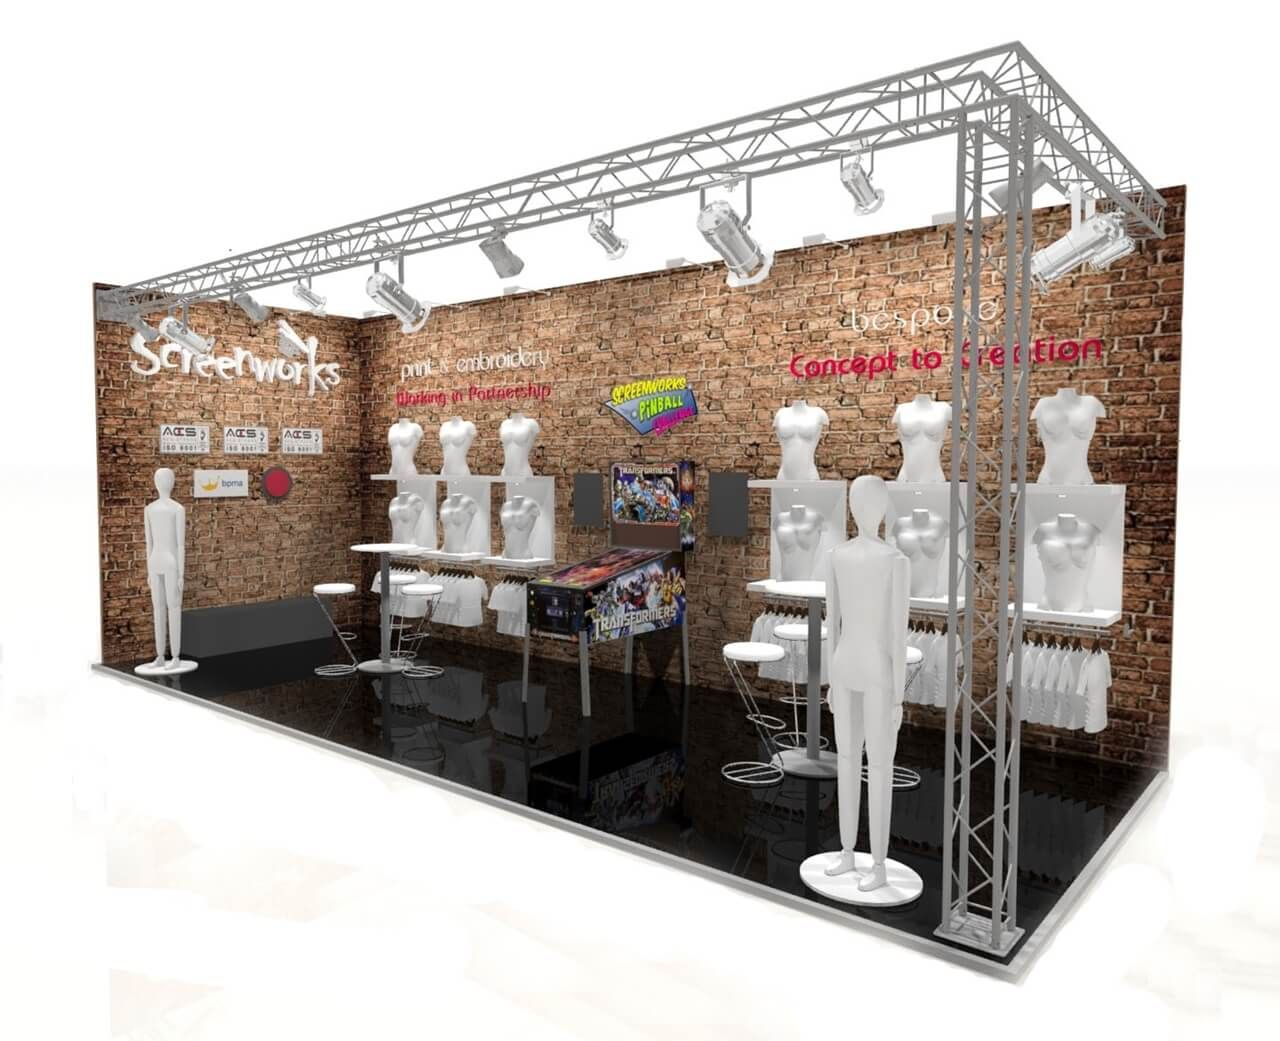 Expo Exhibition Stands Election : Pdmg expo marketing group complex fair service all over europe